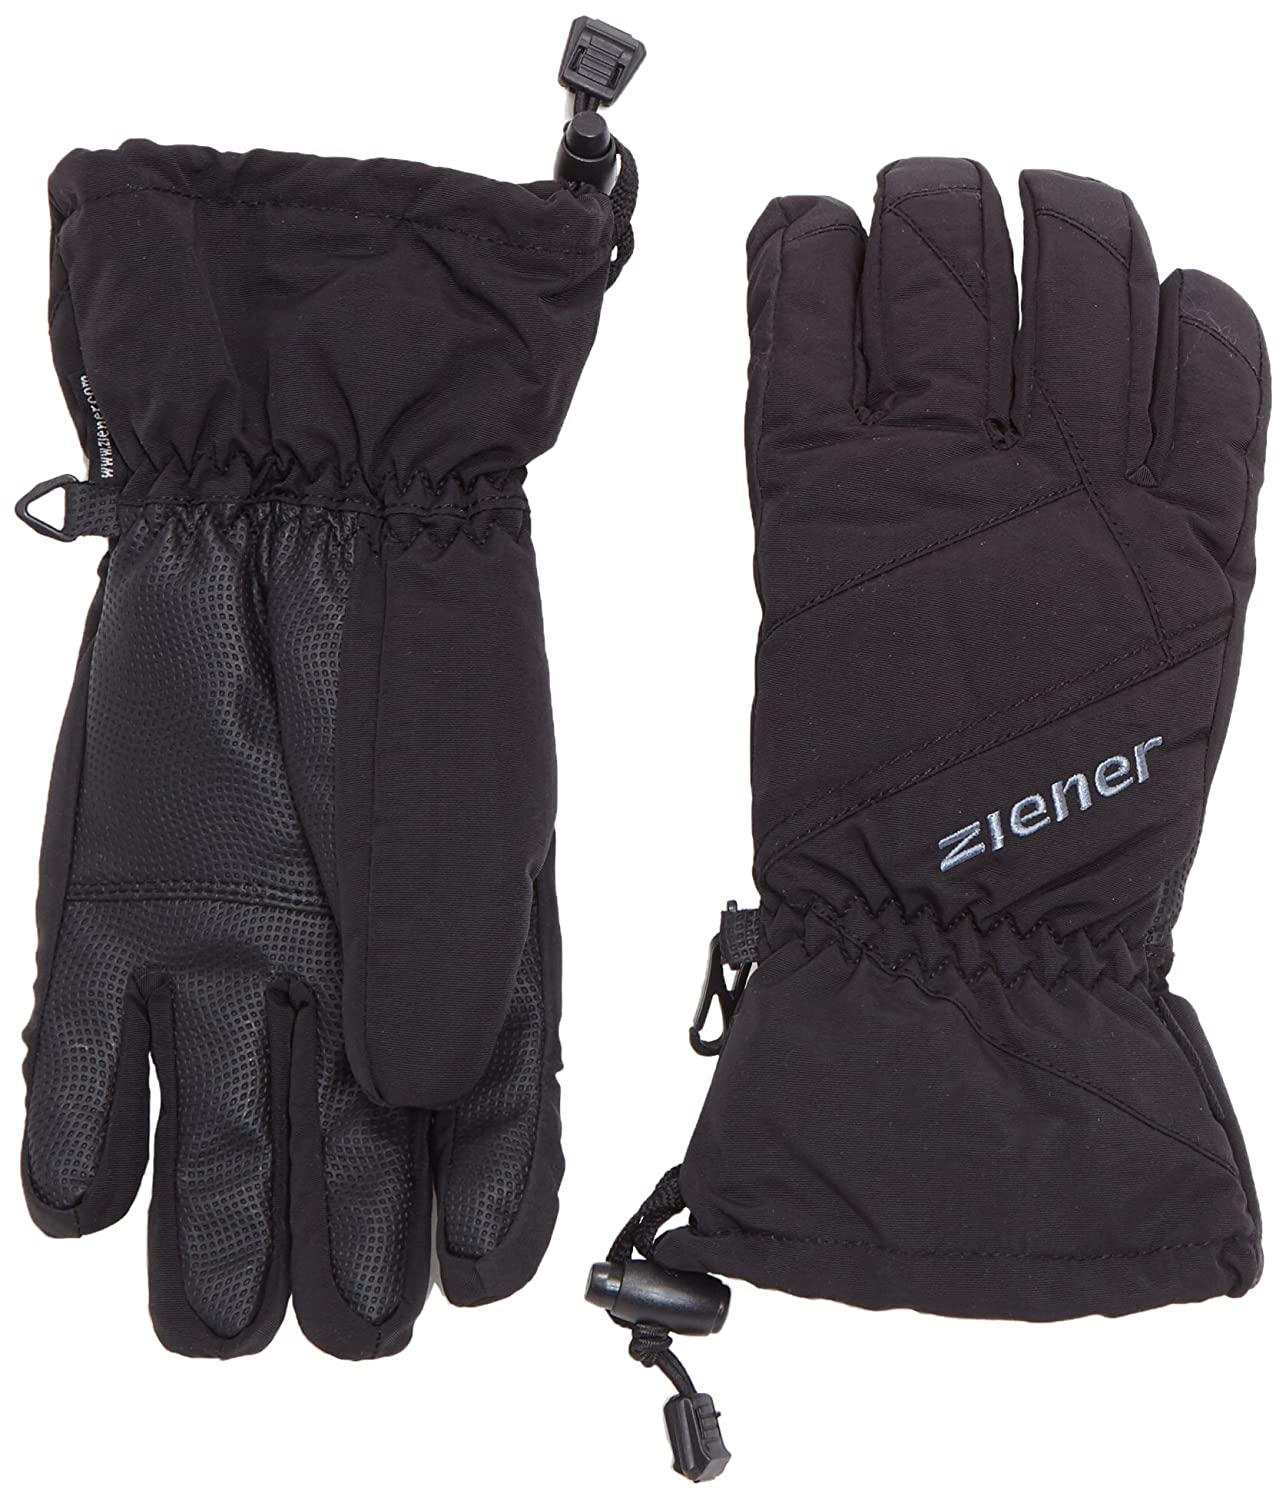 Ziener Jungen Handschuhe Agil AS Gloves Junior